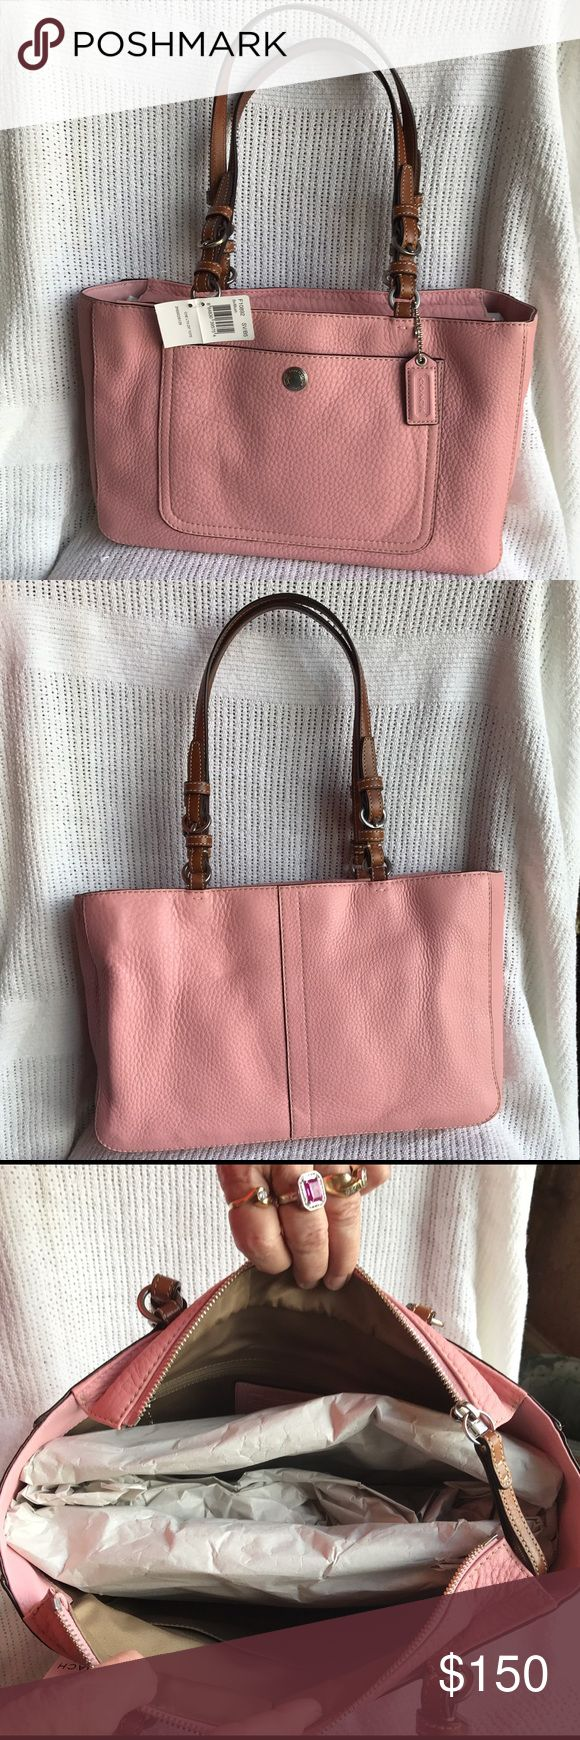 """NWT Coach pink shoulder bag NWT Coach pink shoulder bag with double handles. Open ended zip closure. Slash pocket on front. 2 slash pockets and 1 zip pocket on inside. 13"""" W x 8.25"""" T x 3.5"""" front to back. 9"""" shoulder drop. Smoke free home. No odors, tears, imperfections of any kind. Coach Bags Shoulder Bags"""